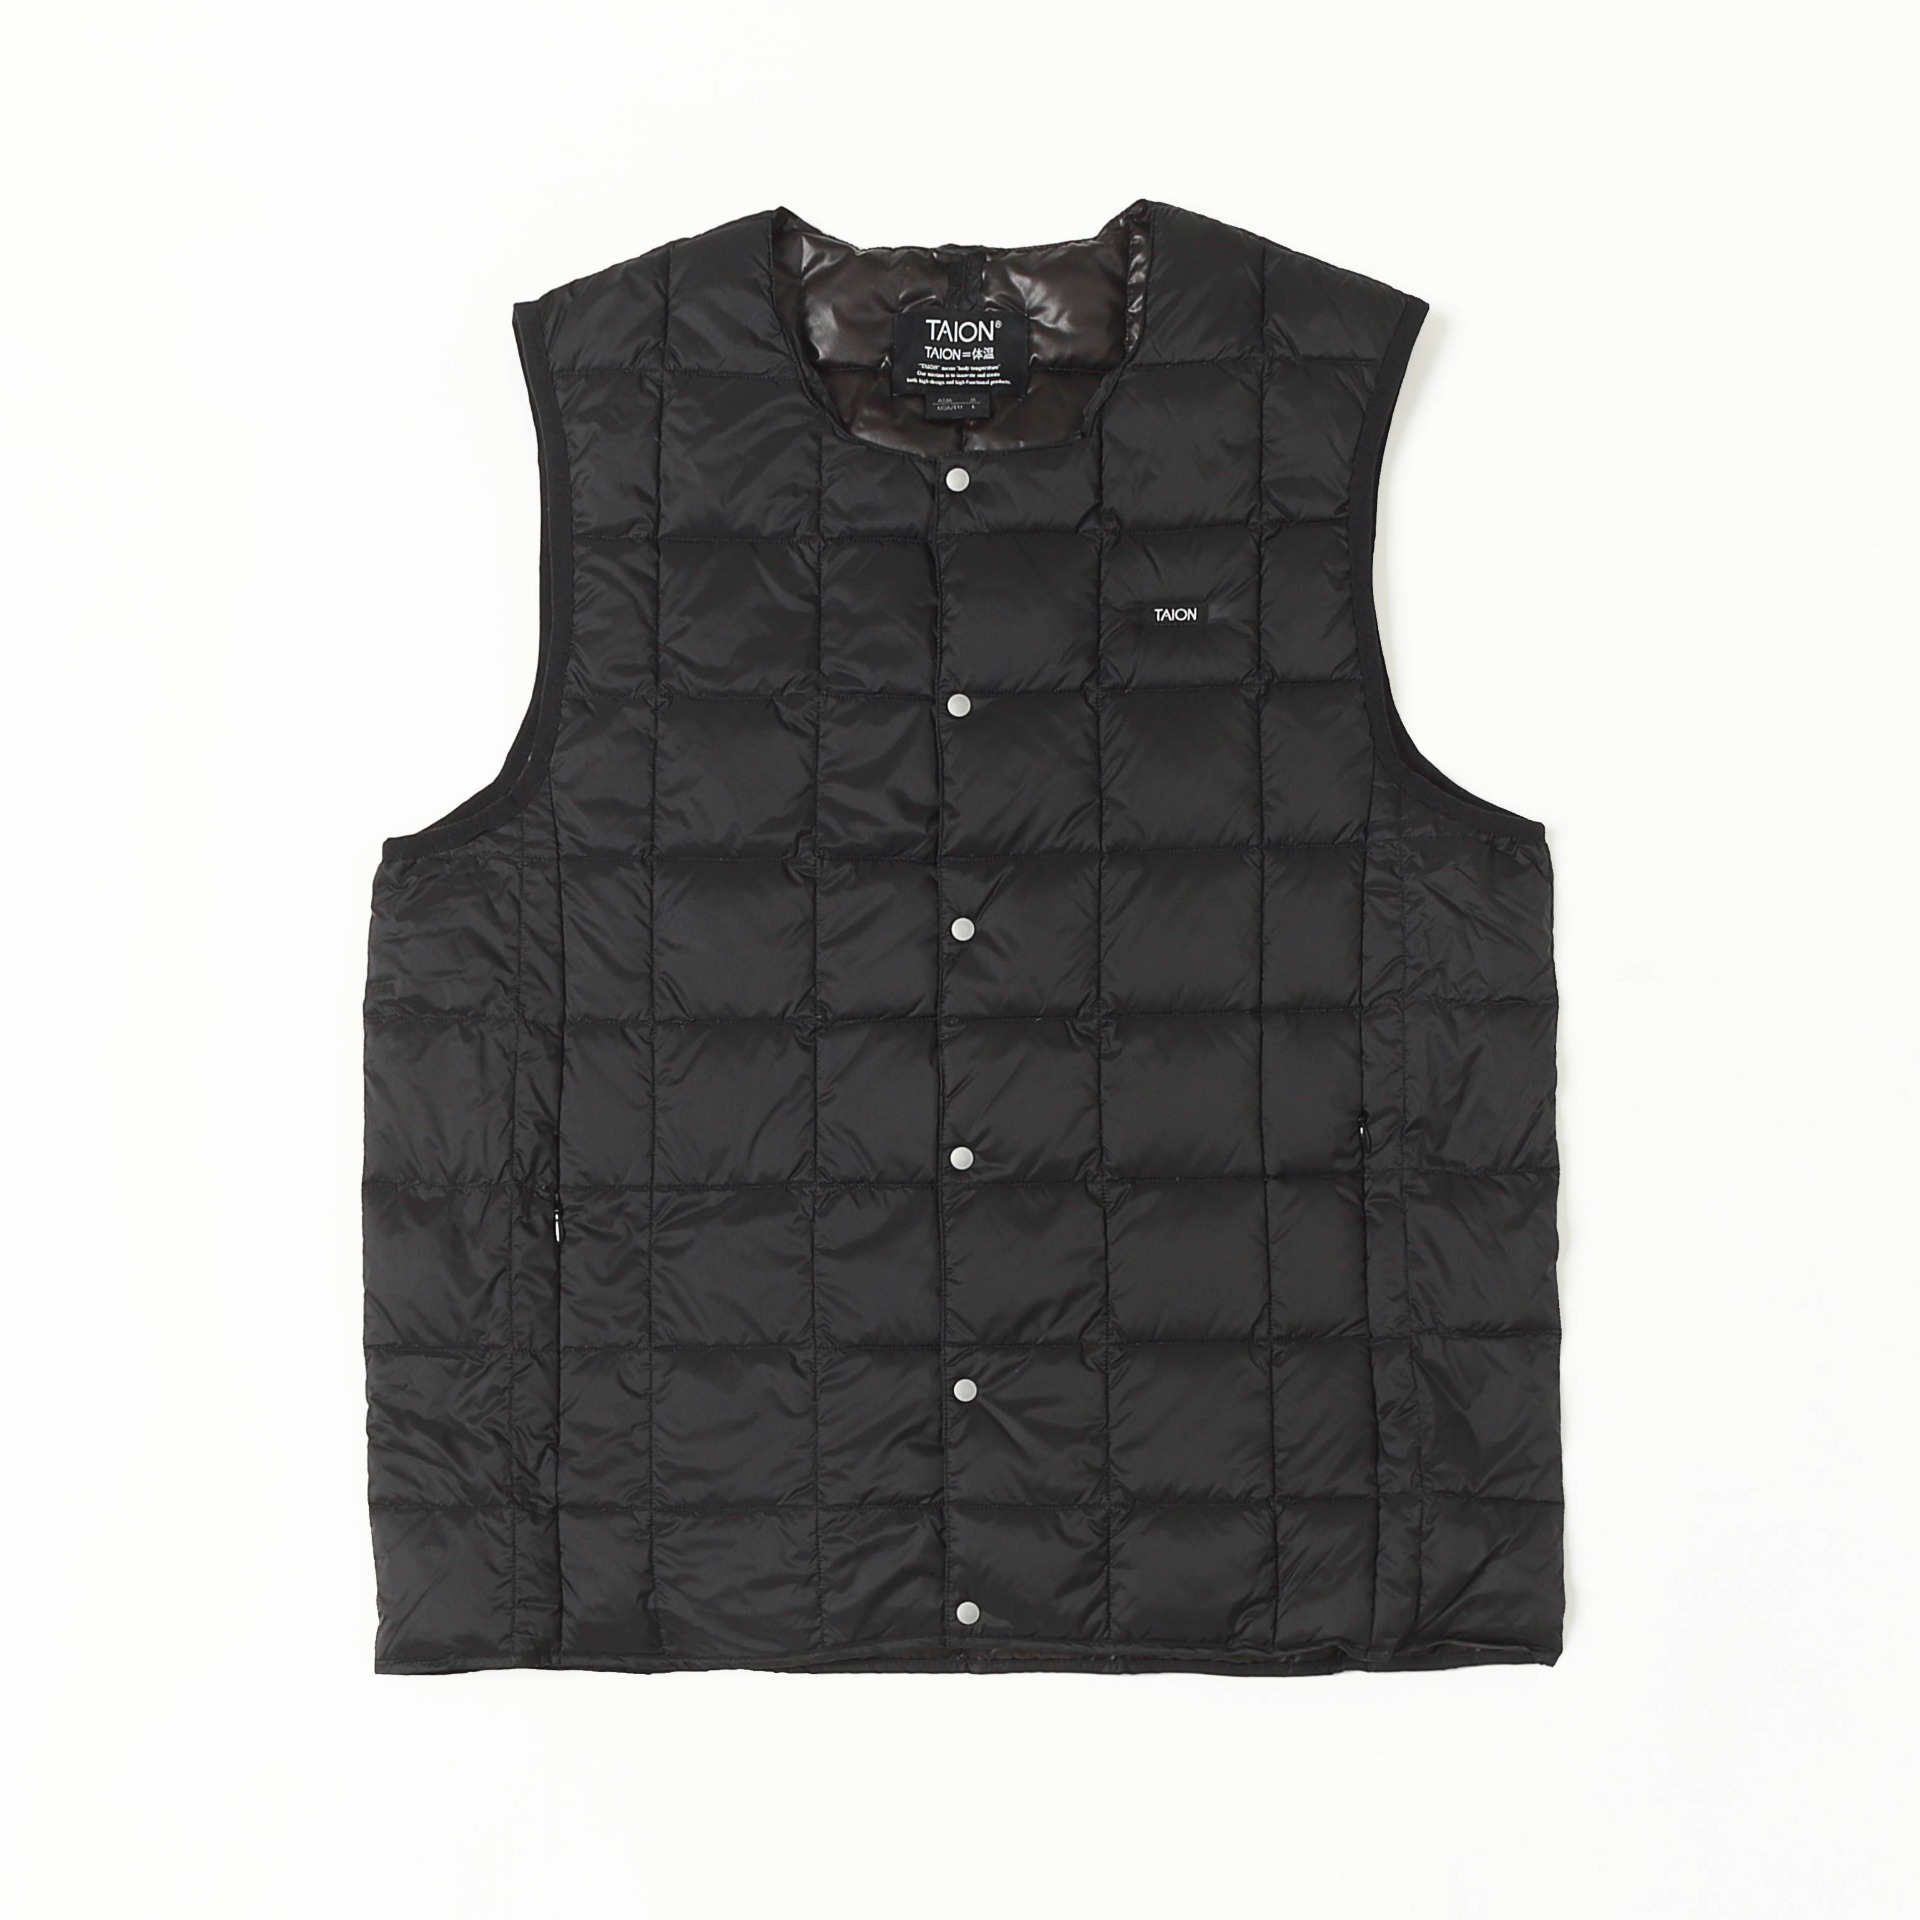 CREW NECK BUTTON DOWN VEST (Black)